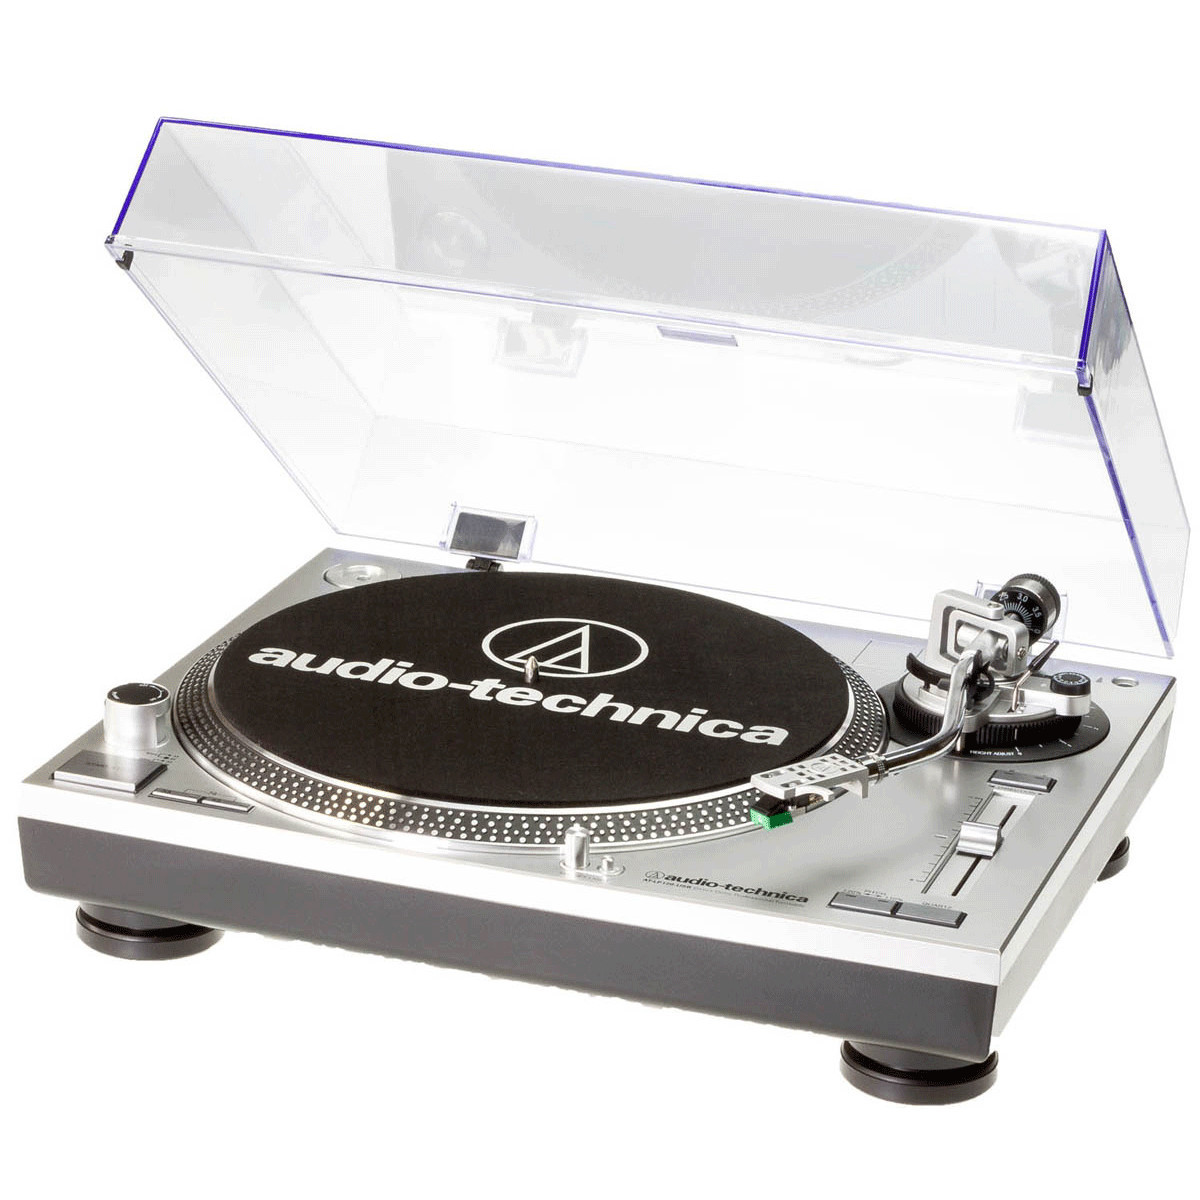 Image of Audio-Technica AT LP120 USB Professional USB DJ Turntable